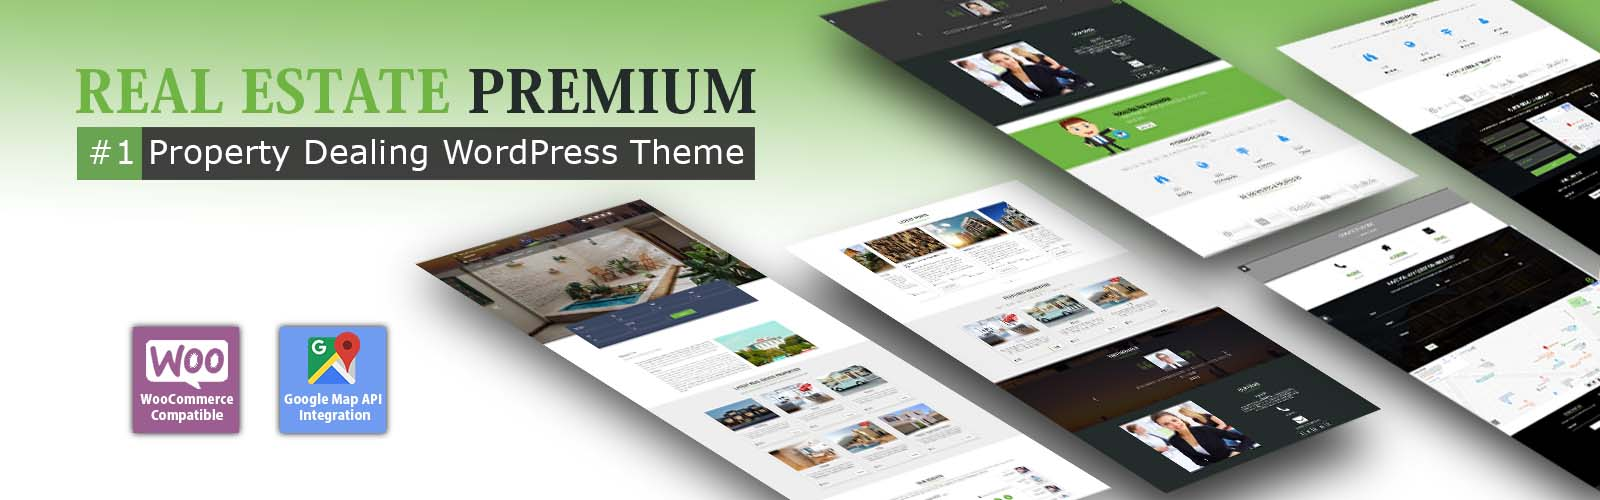 RealEstate WordPress Premium Theme - Weblizar WordPress Themes